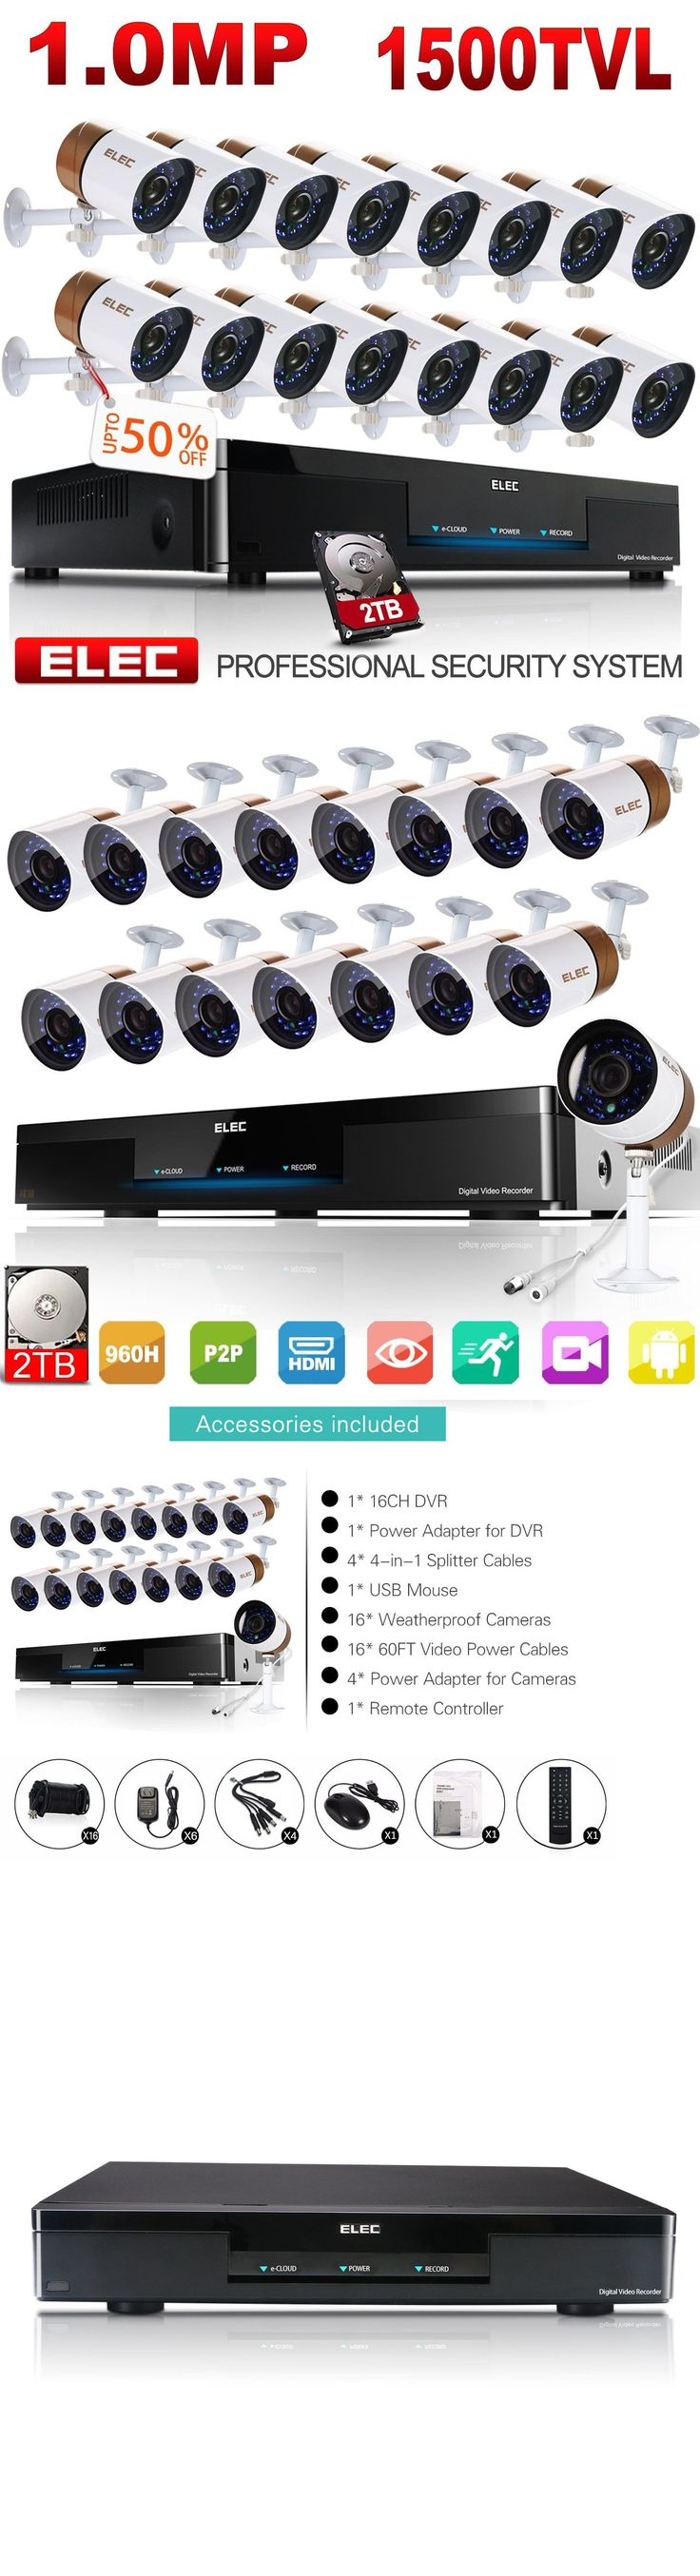 Surveillance Security Systems: Elec 16Ch 960H Hdmi Dvr Cctv Home Security Camera System Video Recorder 2Tb Hdd -> BUY IT NOW ONLY: $855.1 on eBay!